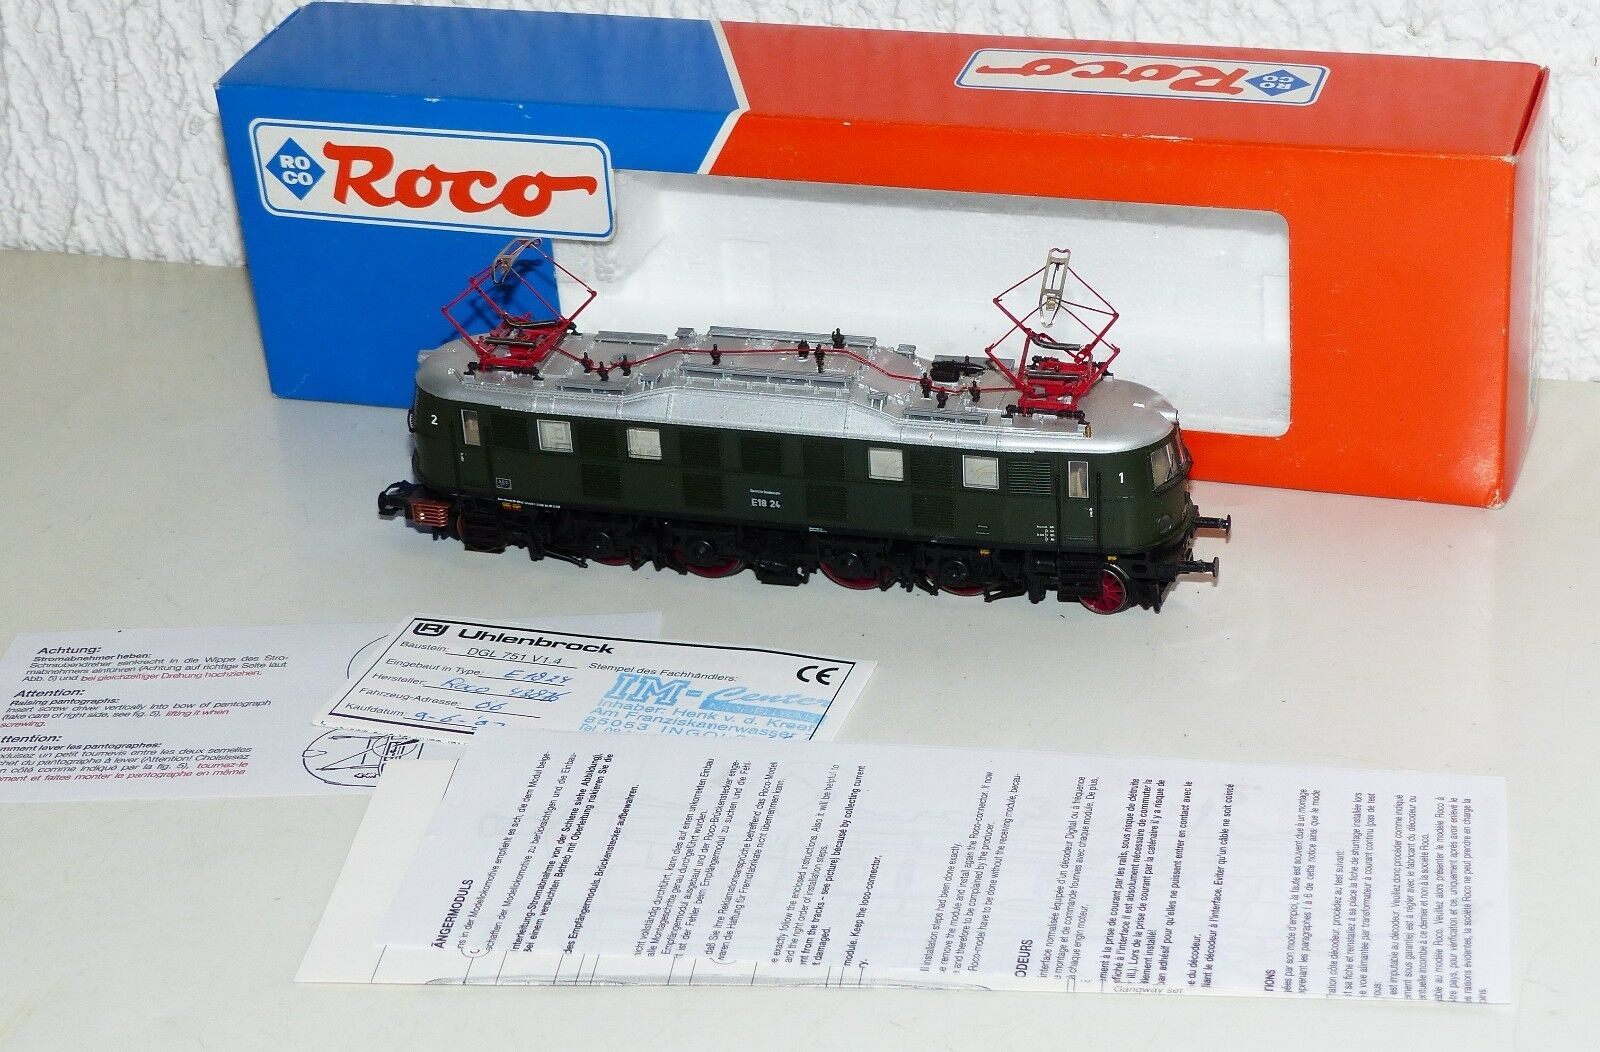 ROCO 43954 E-Lok BR e18 24/e 18 Digital h0 corrente alternata OVP